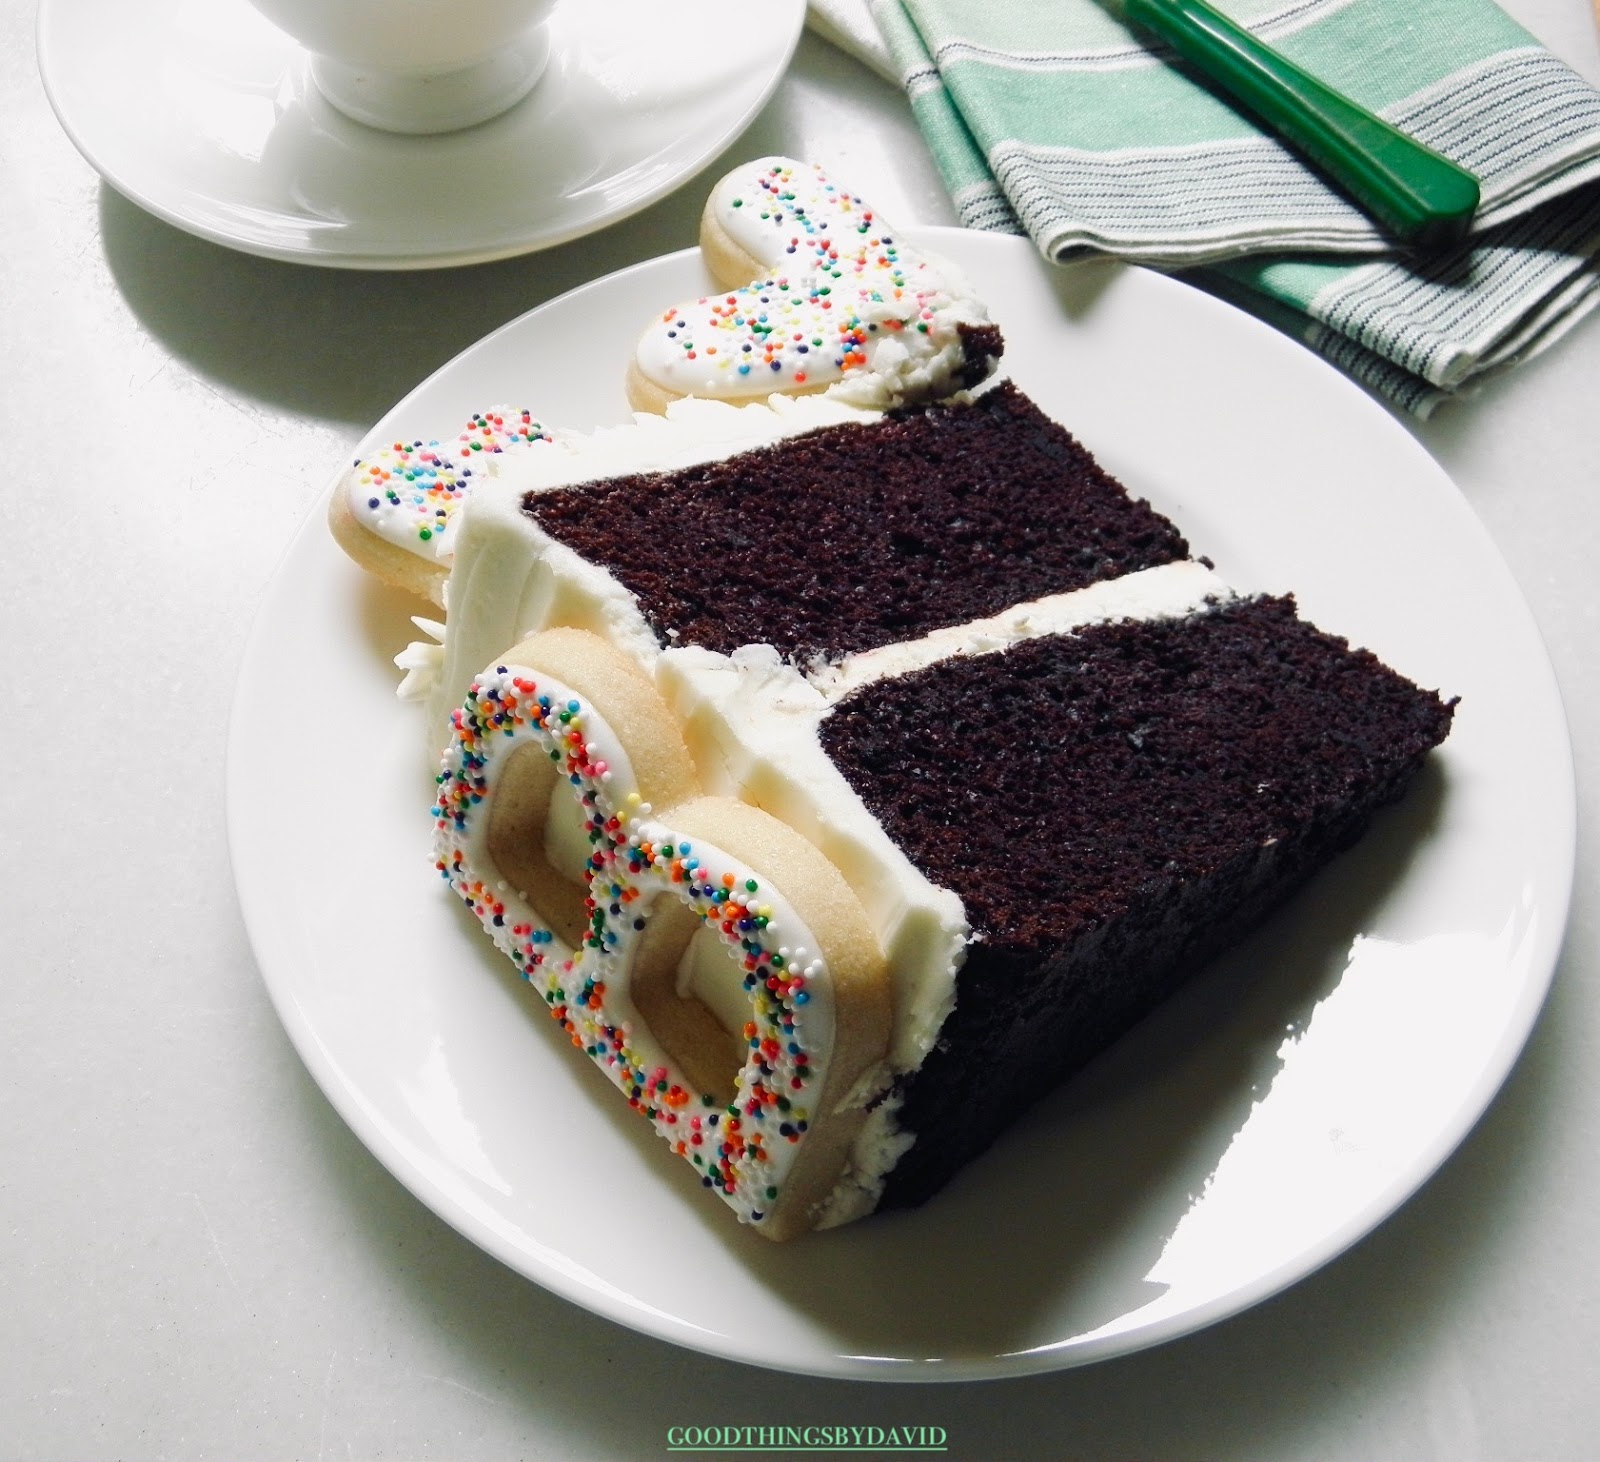 The Rich Yet Light Chocolate Cake Recipe Comes From Martha Stewart Its Her One Bowl Which Is Always Outstanding And Very Easy To